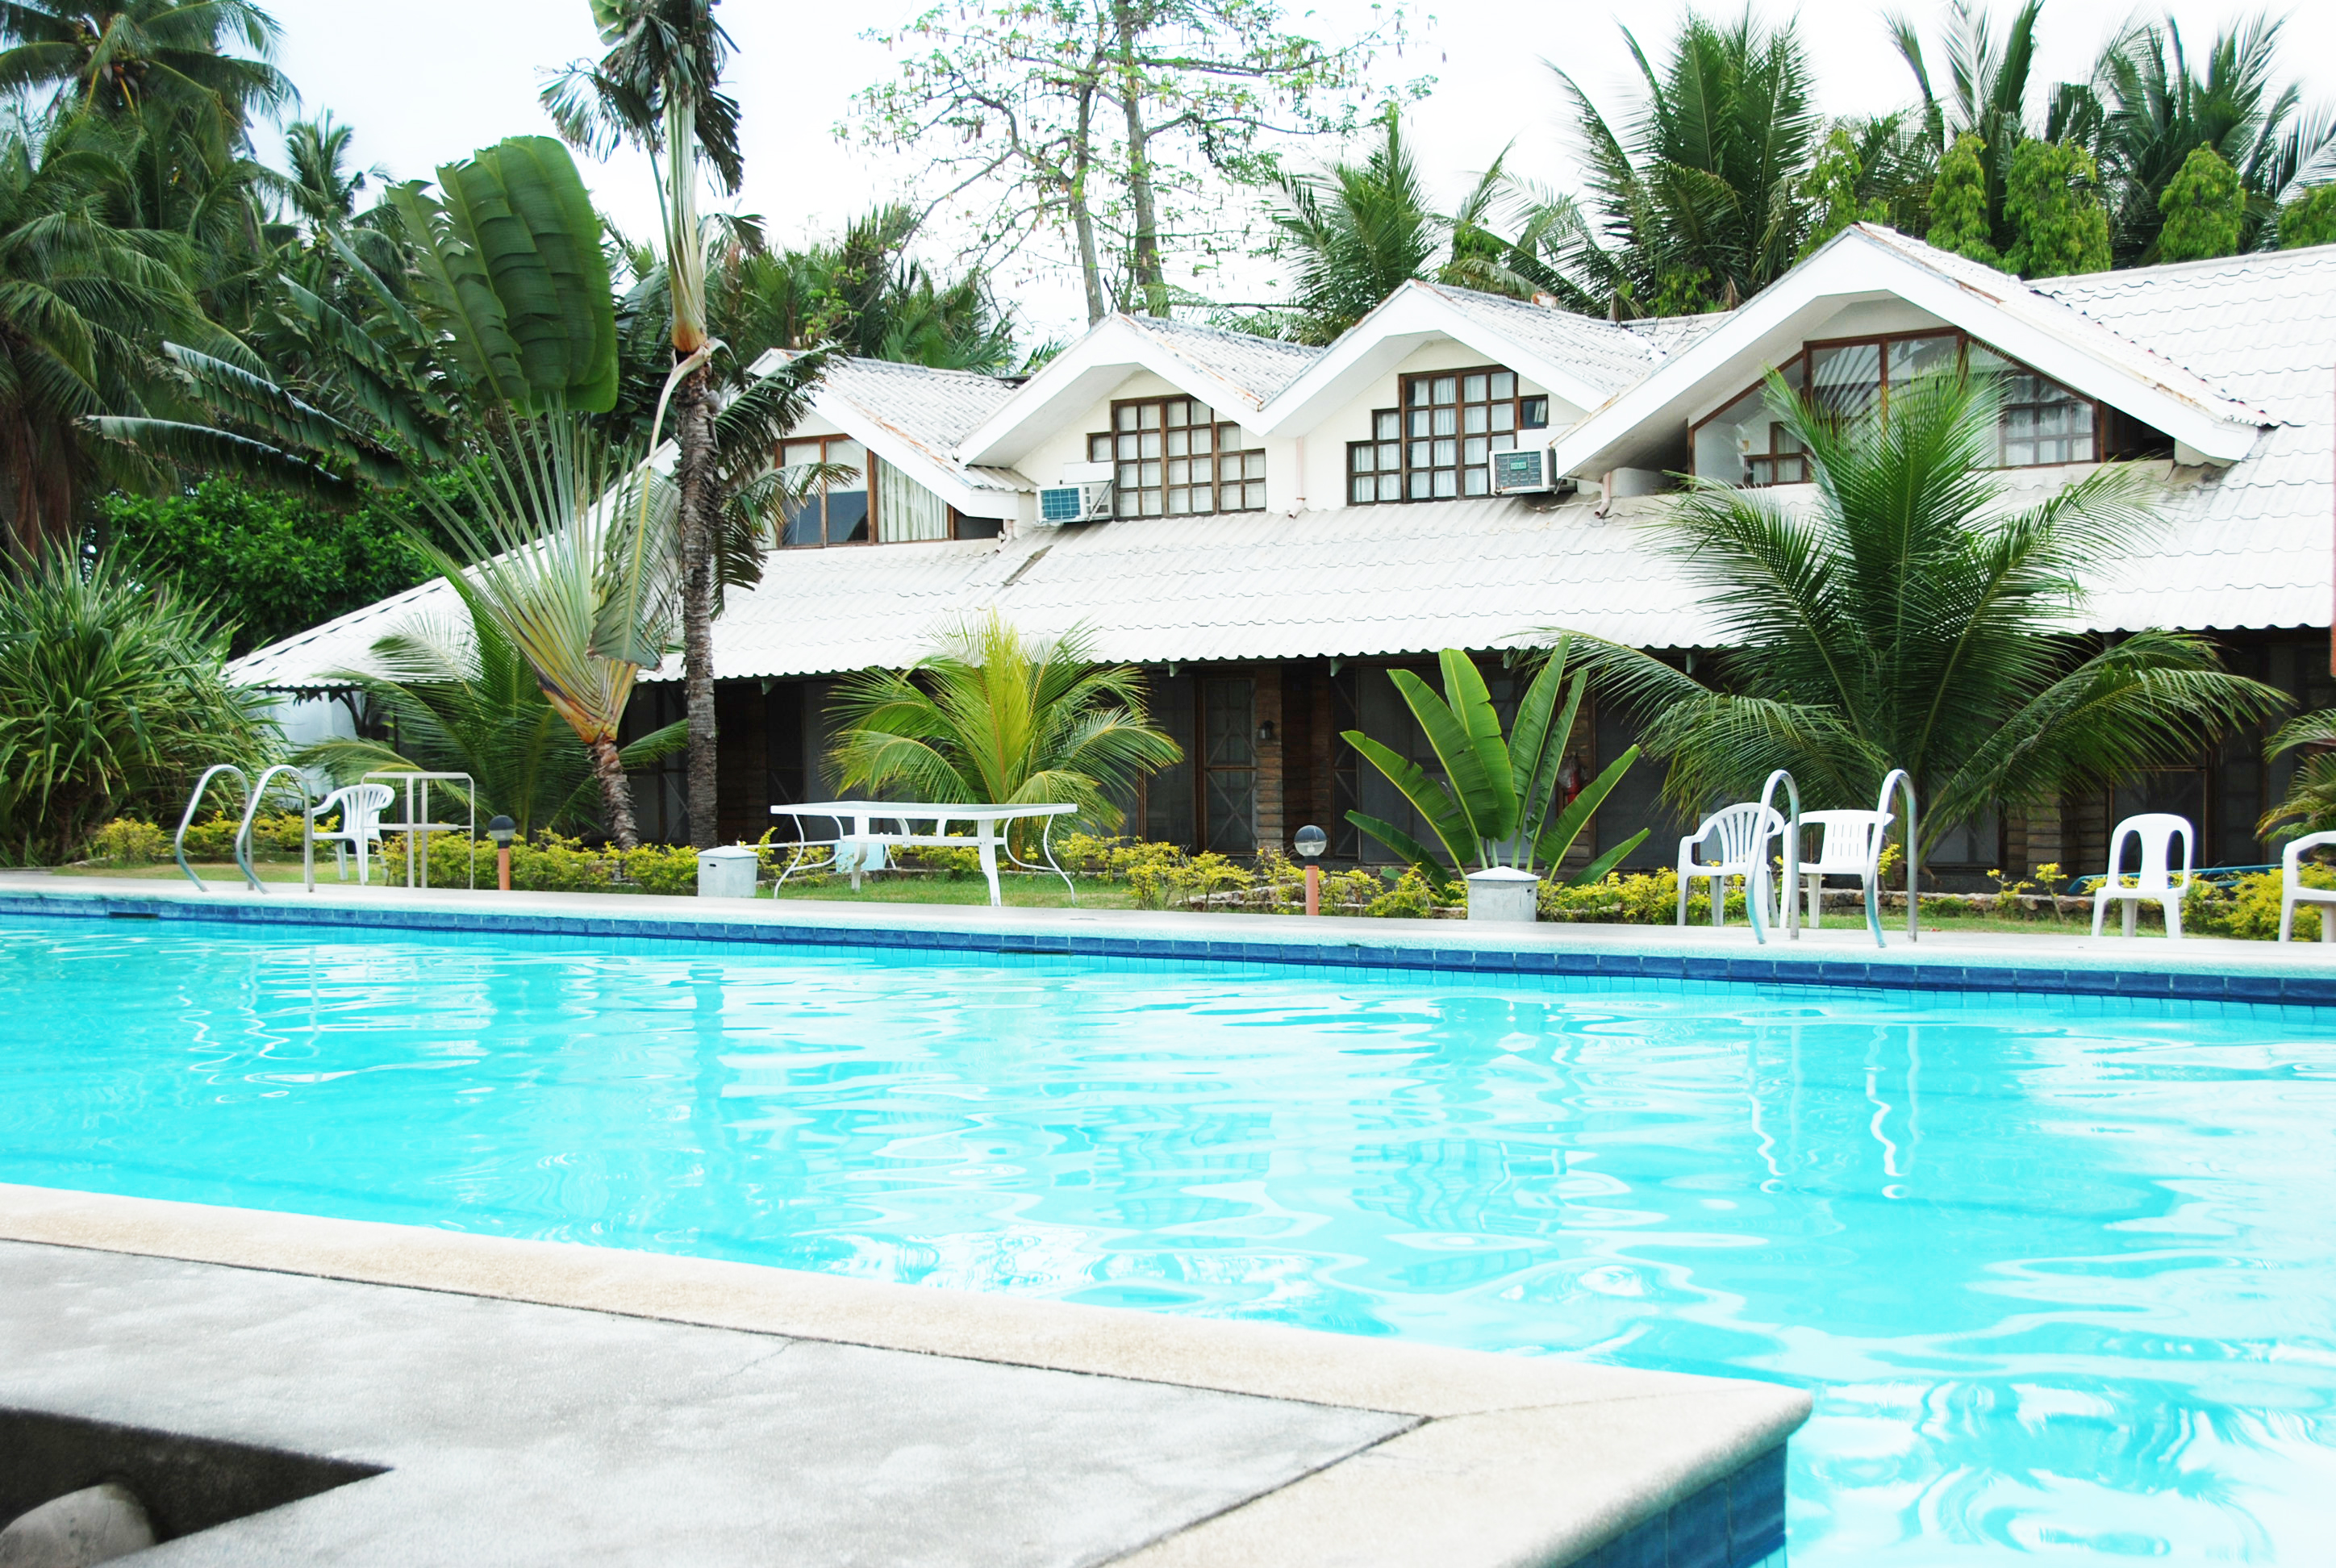 South sea hotel swimming pool fronting rooms southsea - Hotels in dumaguete with swimming pool ...